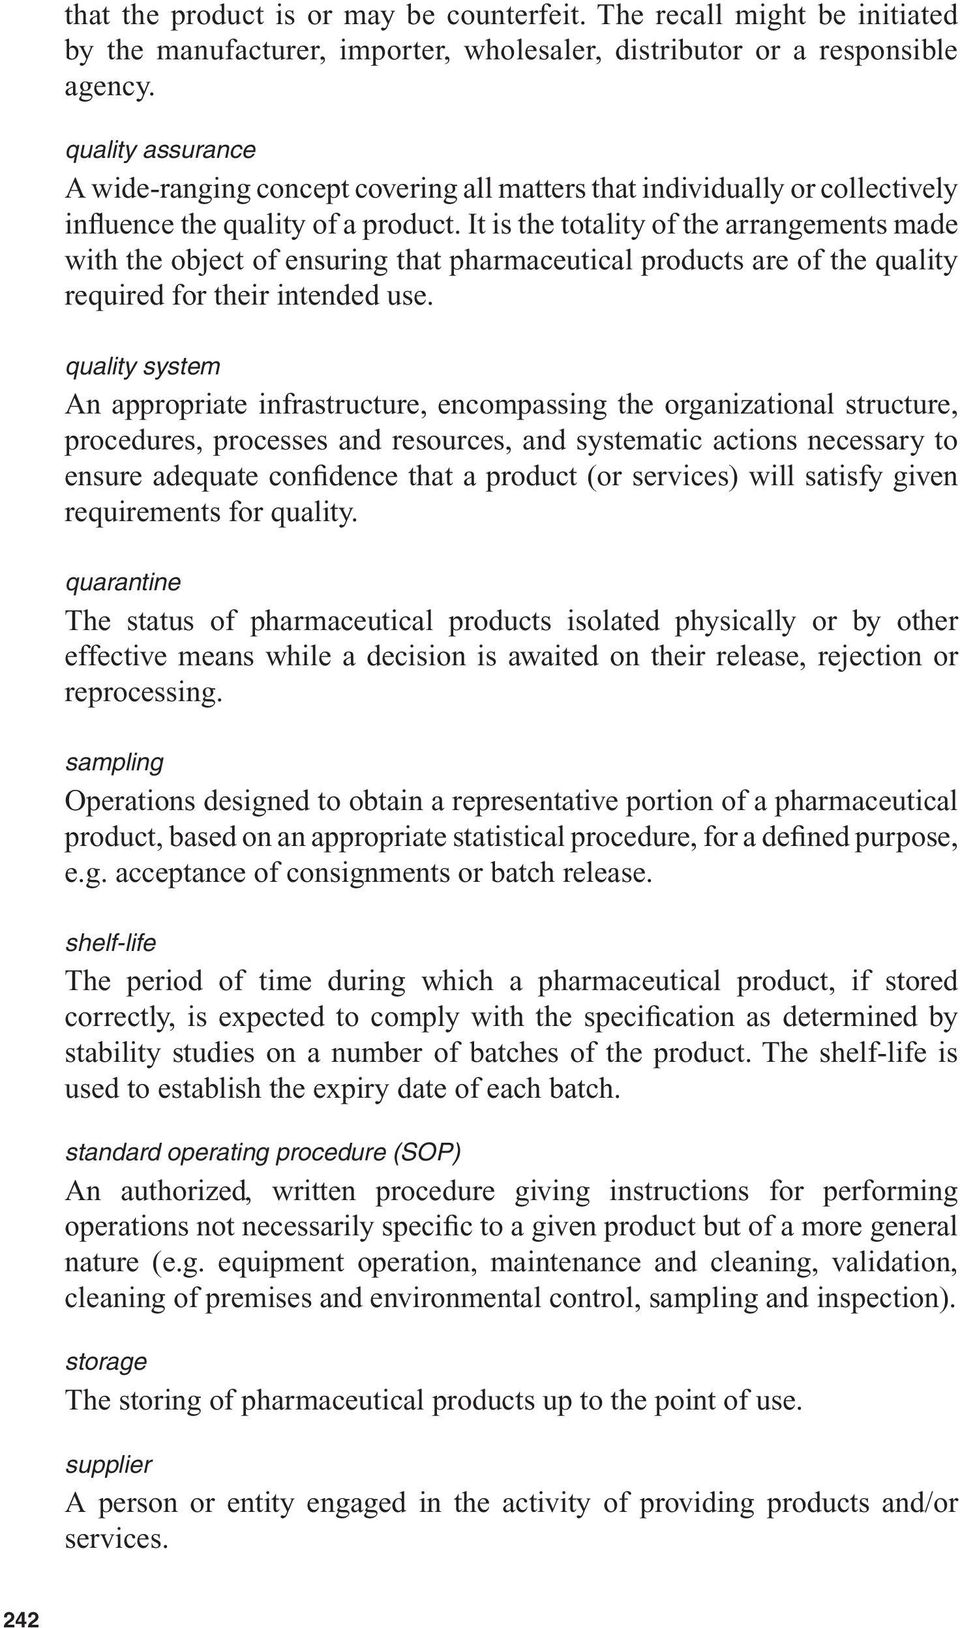 It is the totality of the arrangements made with the object of ensuring that pharmaceutical products are of the quality required for their intended use.